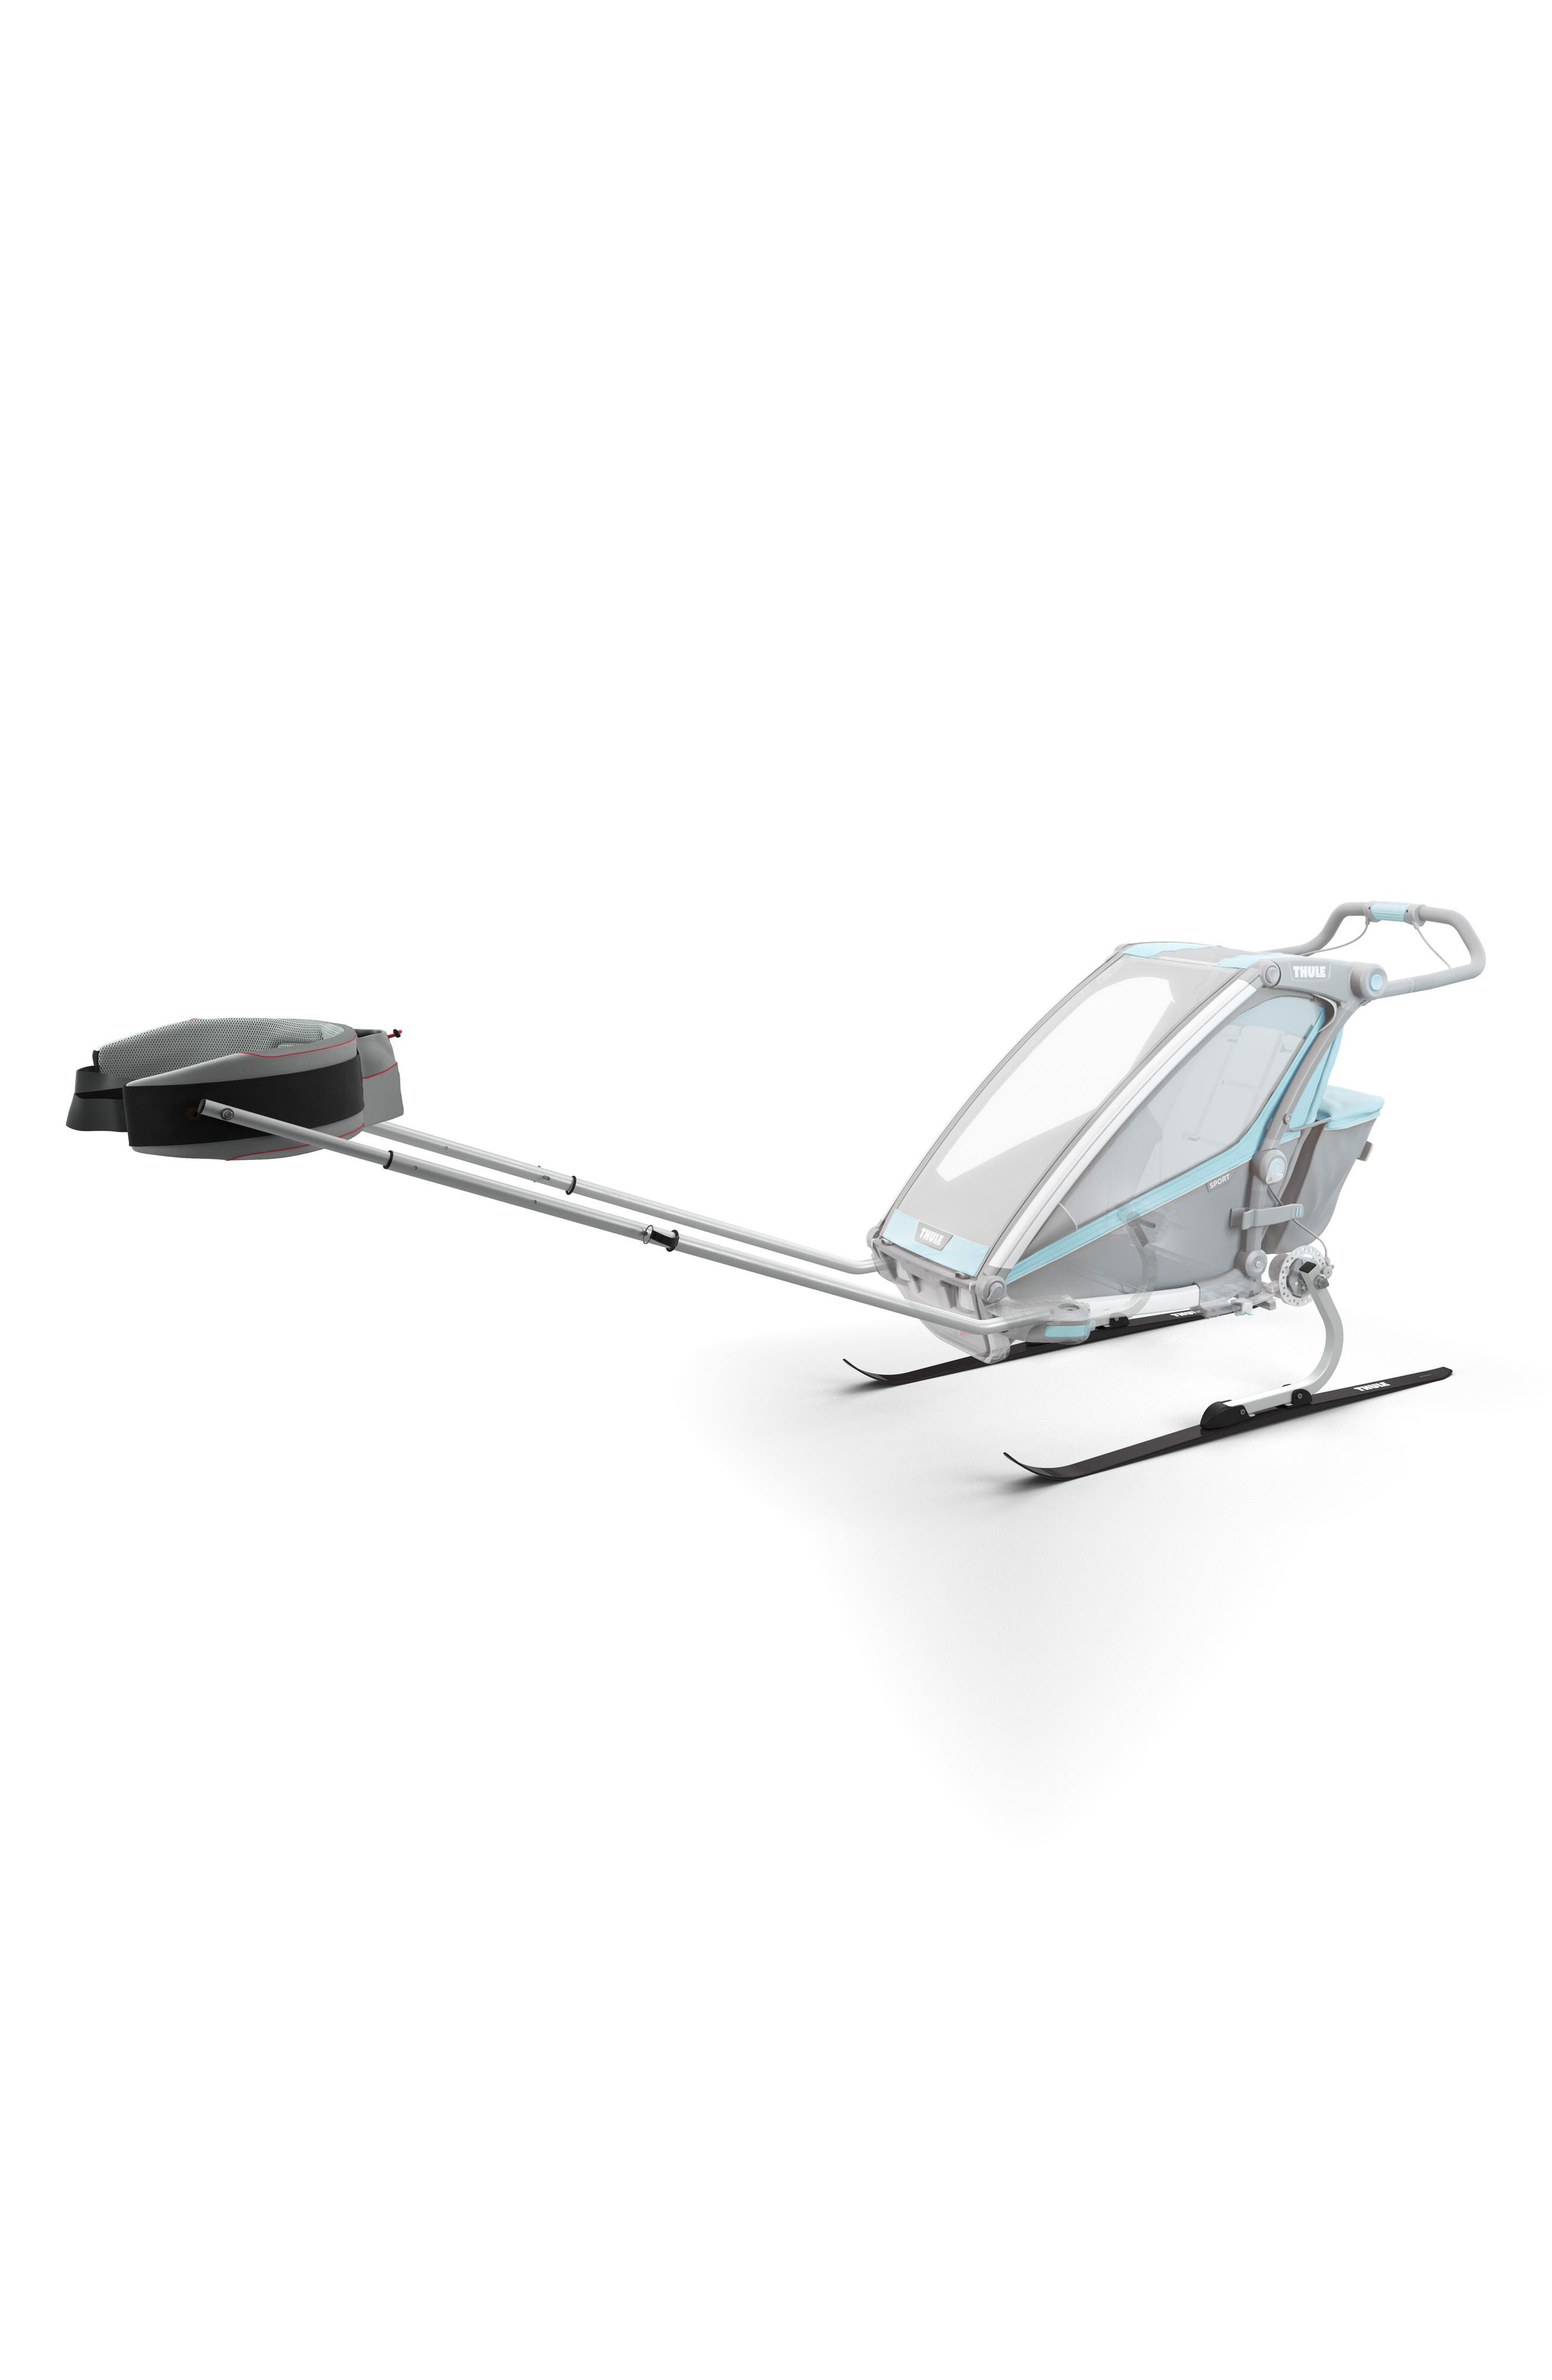 Main Image - Thule Cross-Country Ski Conversion Kit for Thule Chariot Single Strollers